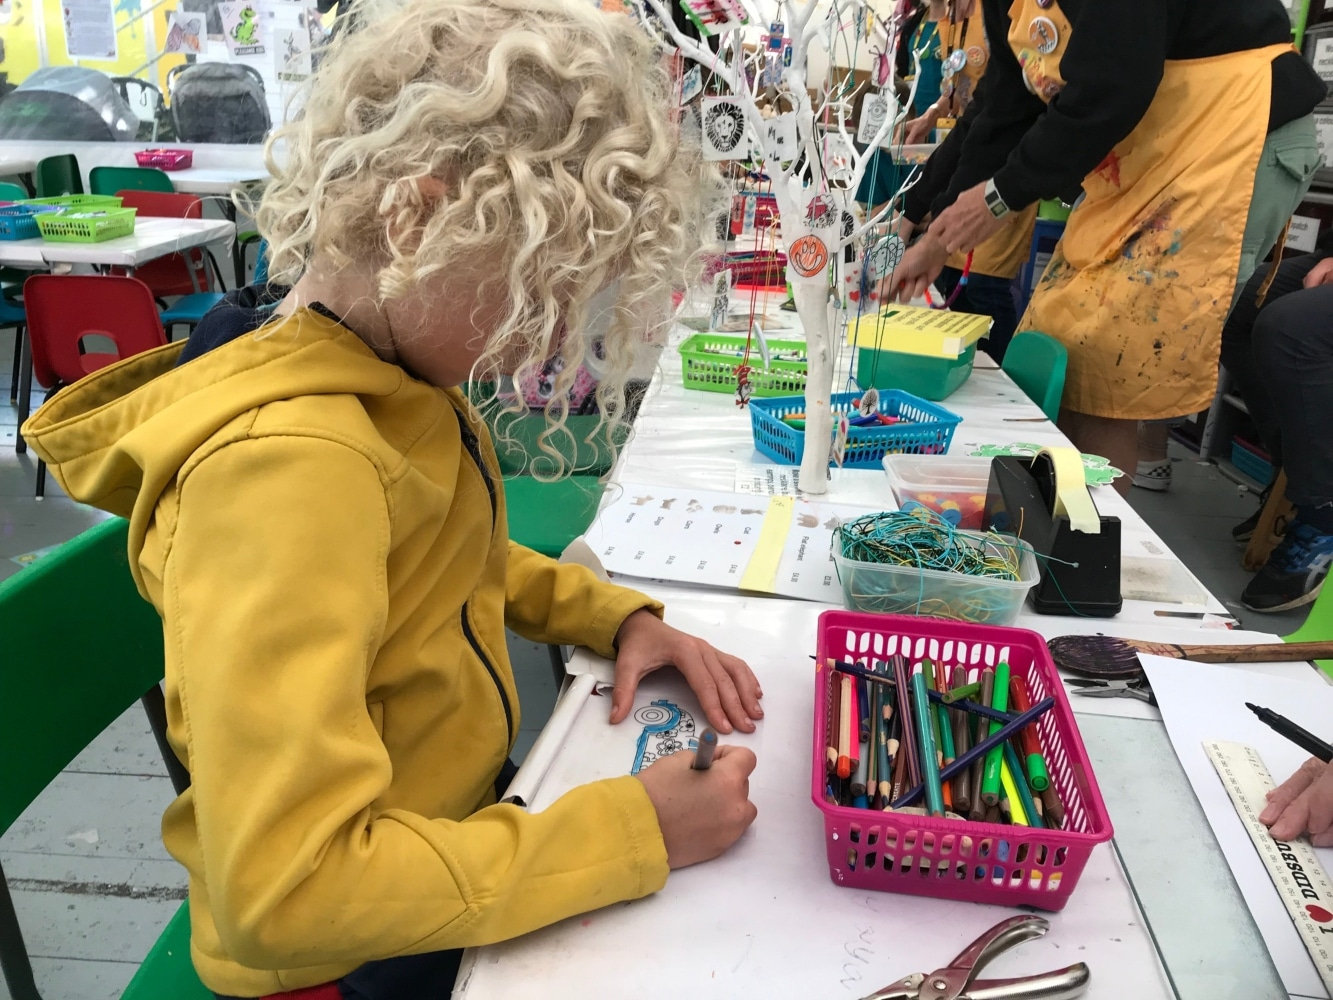 creating jewellery at the fringe